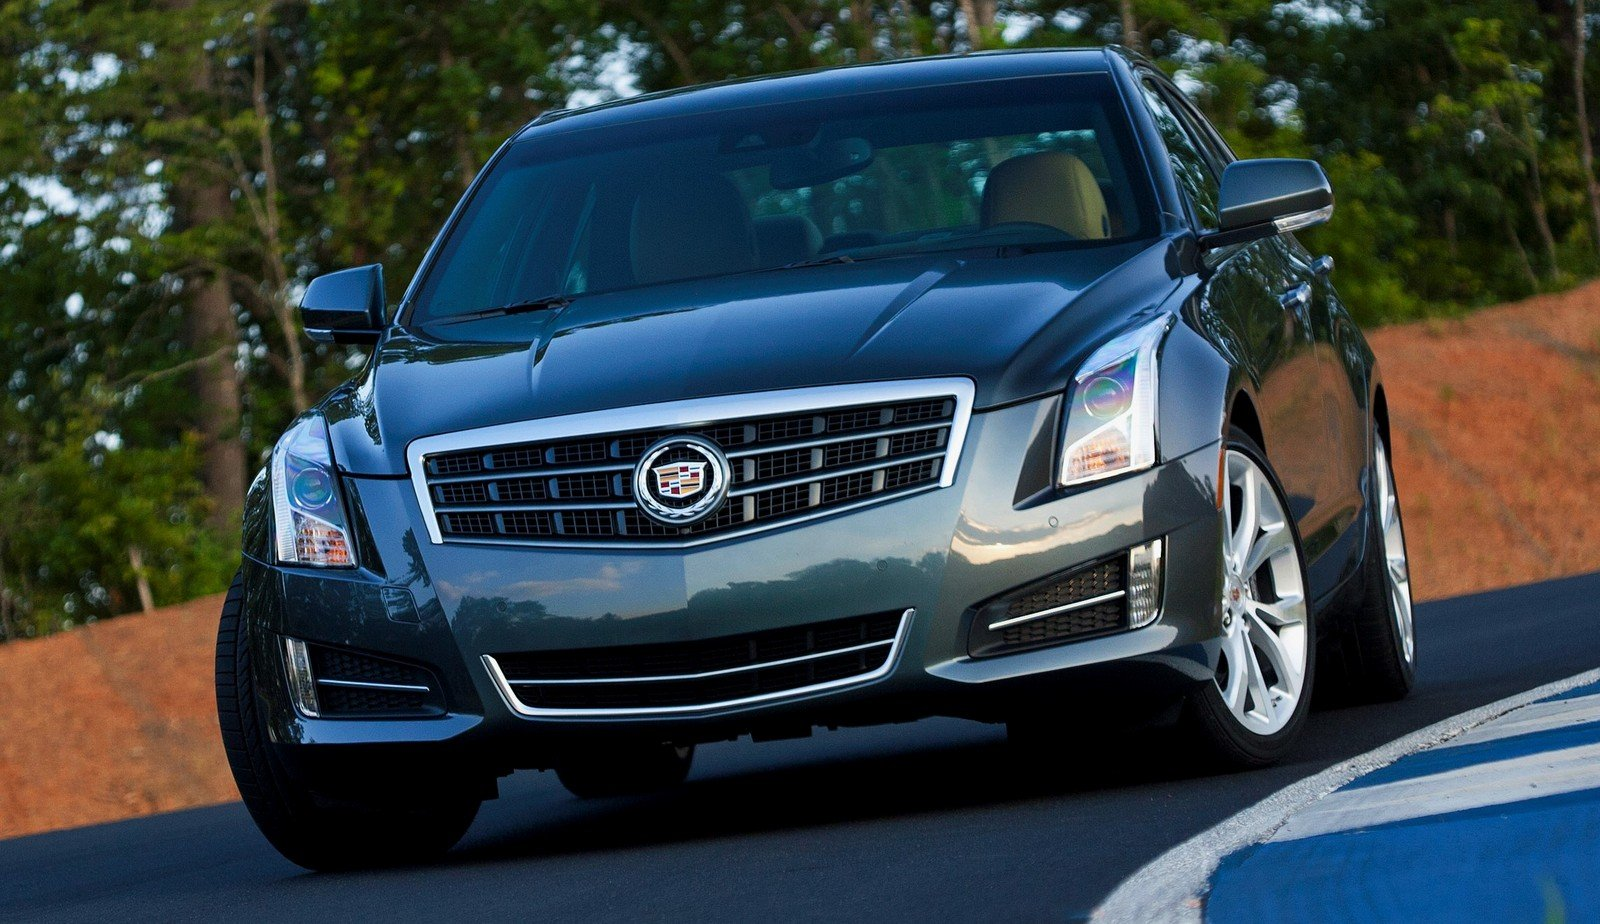 2014 cadillac ats picture 514213 car review top speed. Cars Review. Best American Auto & Cars Review